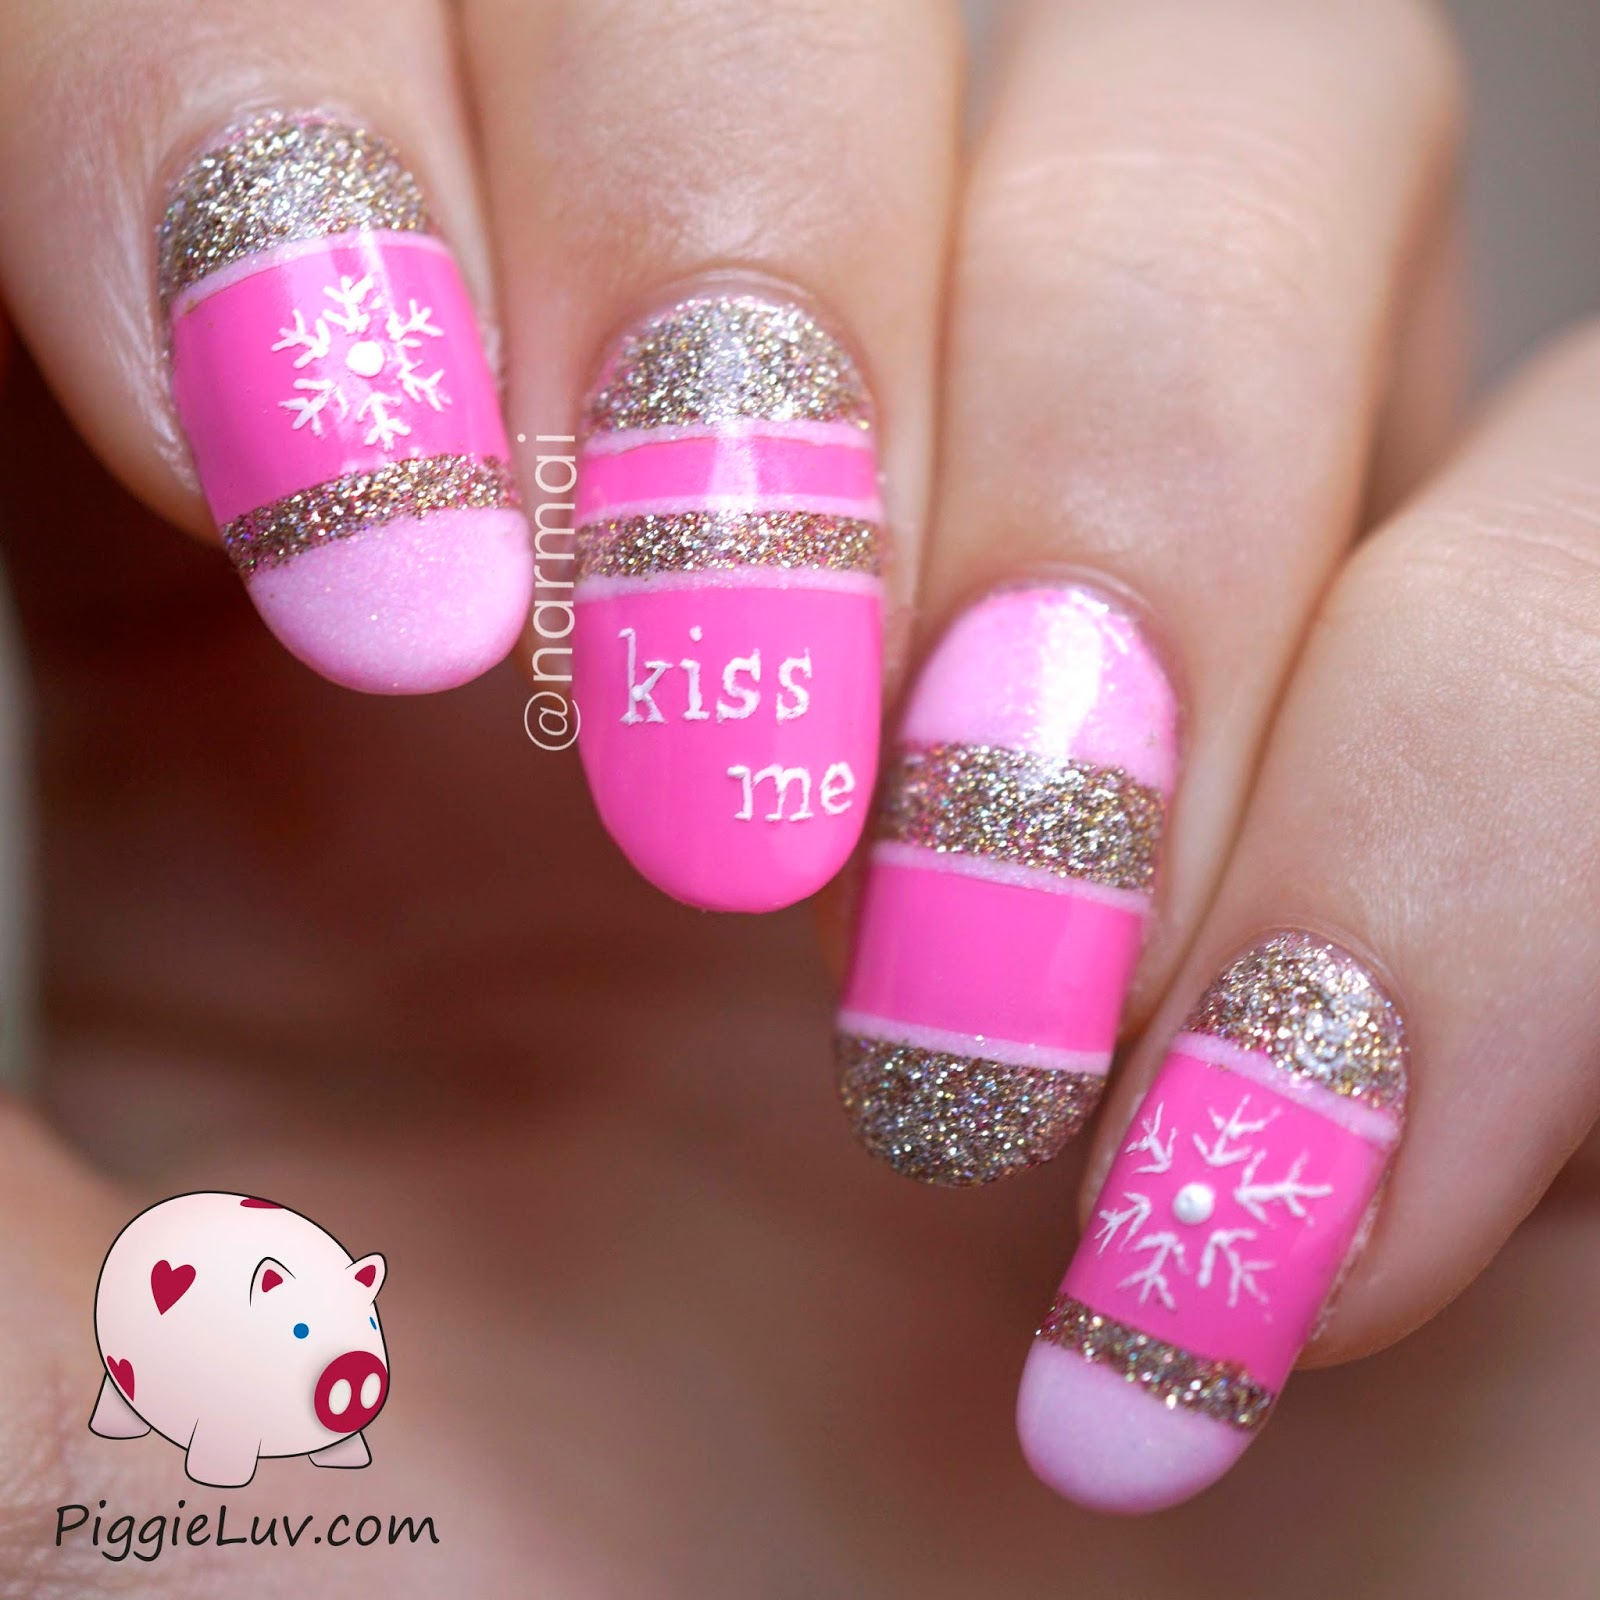 PiggieLuv: Kiss me nail art (with snowflakes)